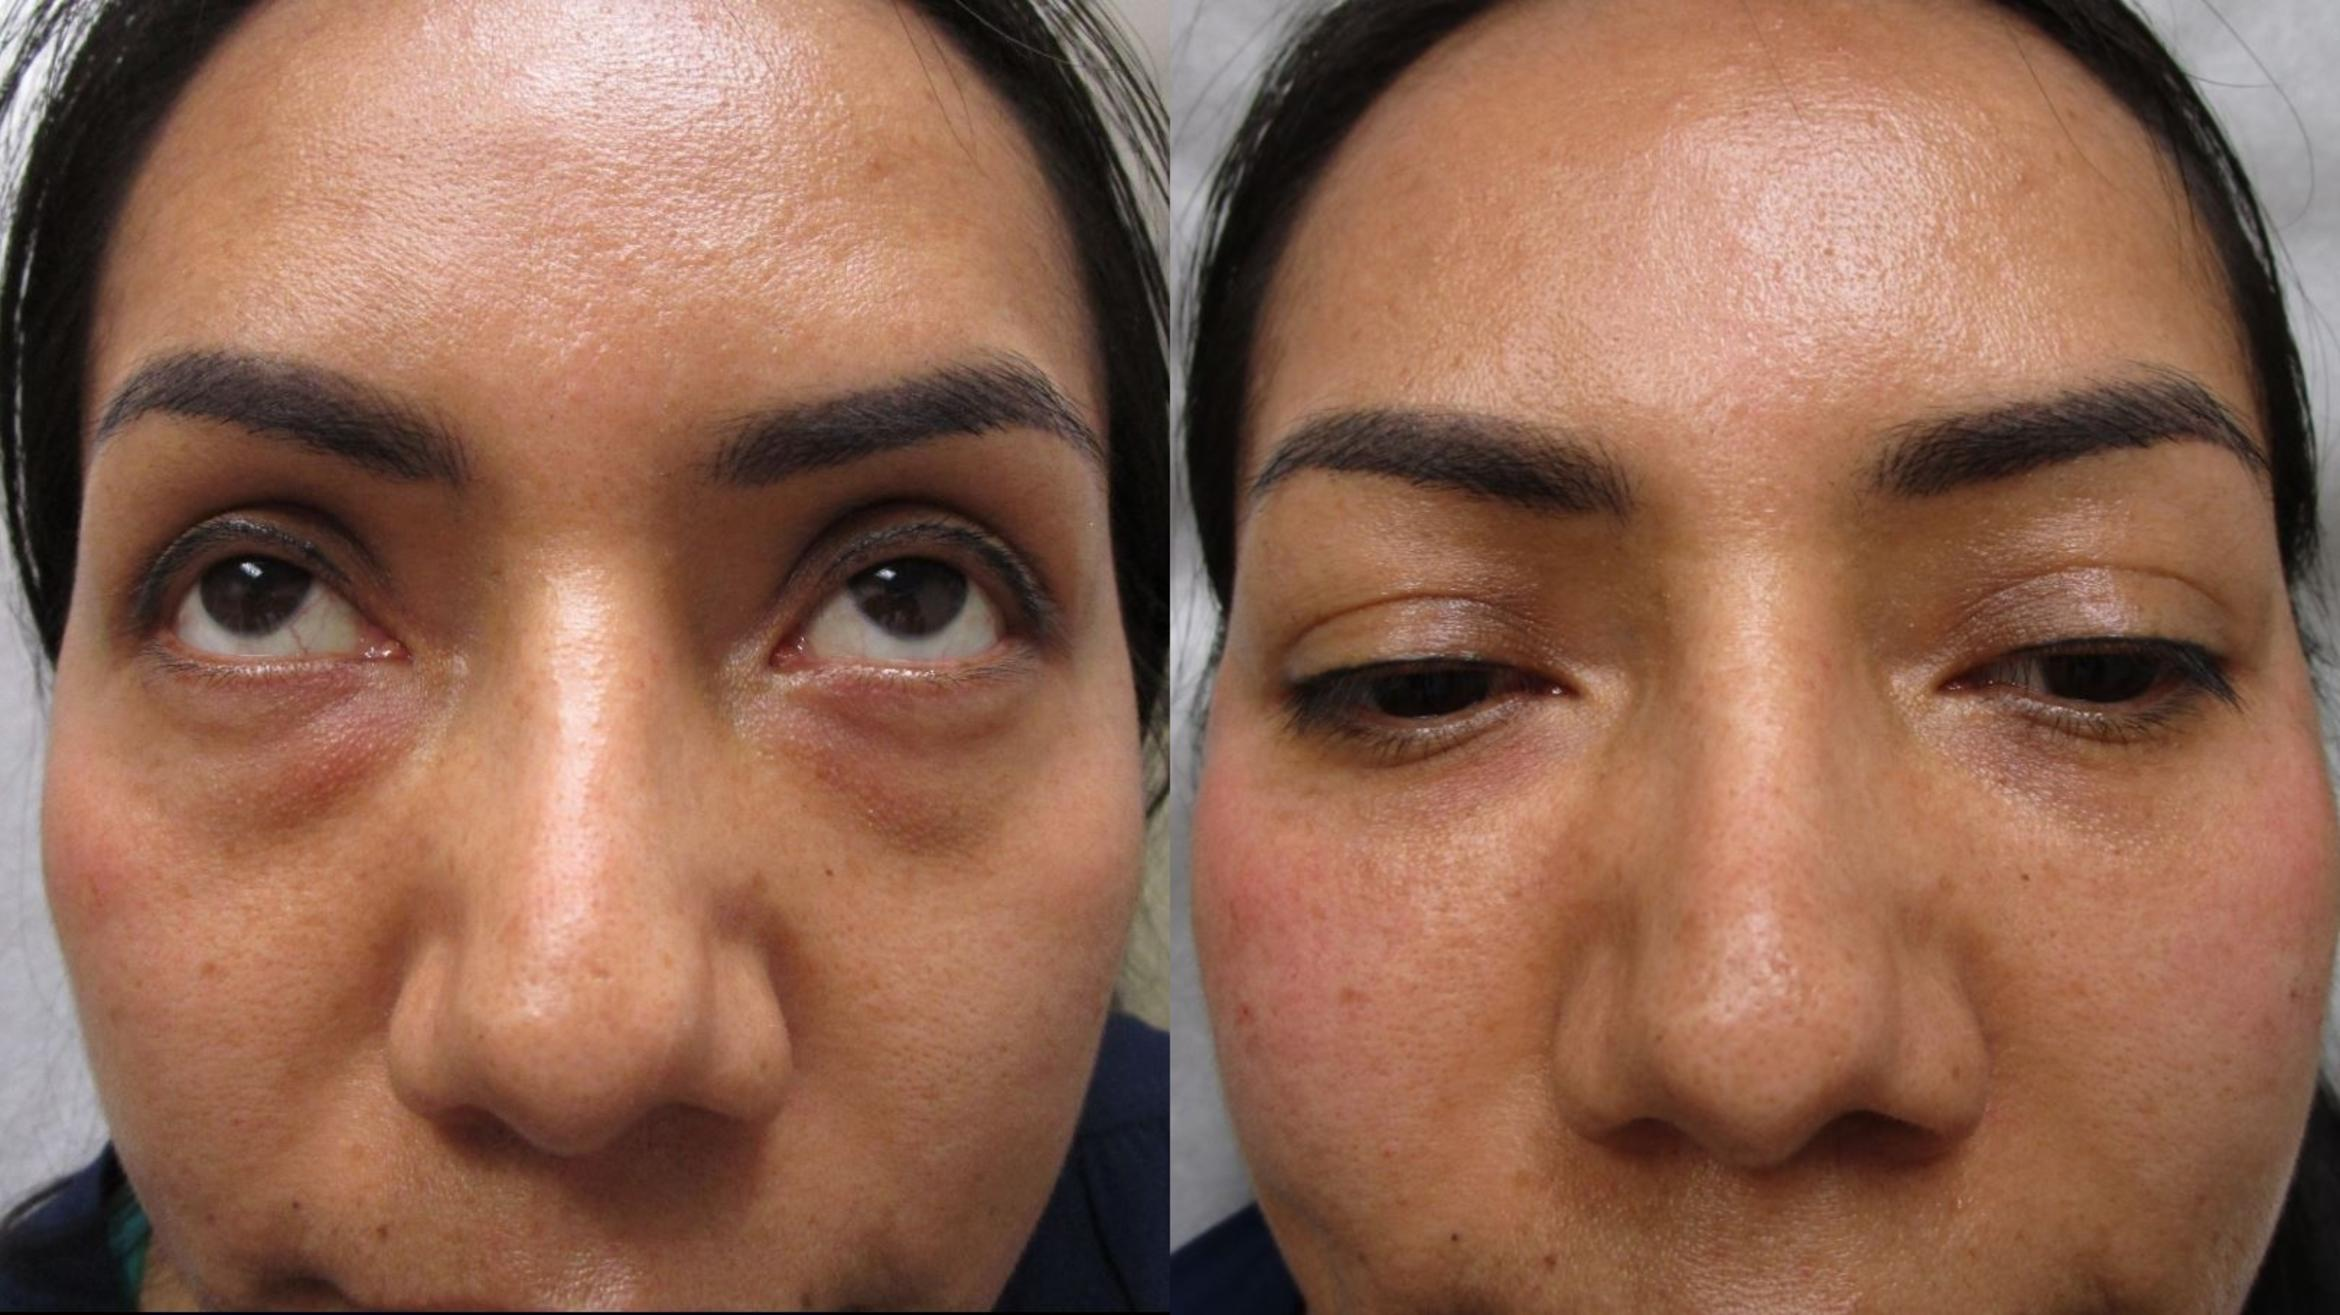 Fillers (JUVÉDERM®, JUVÉDERM VOLUMA®, Restylane®) Before & After Photo | San Francisco, CA | Kaiser Permanente Cosmetic Services